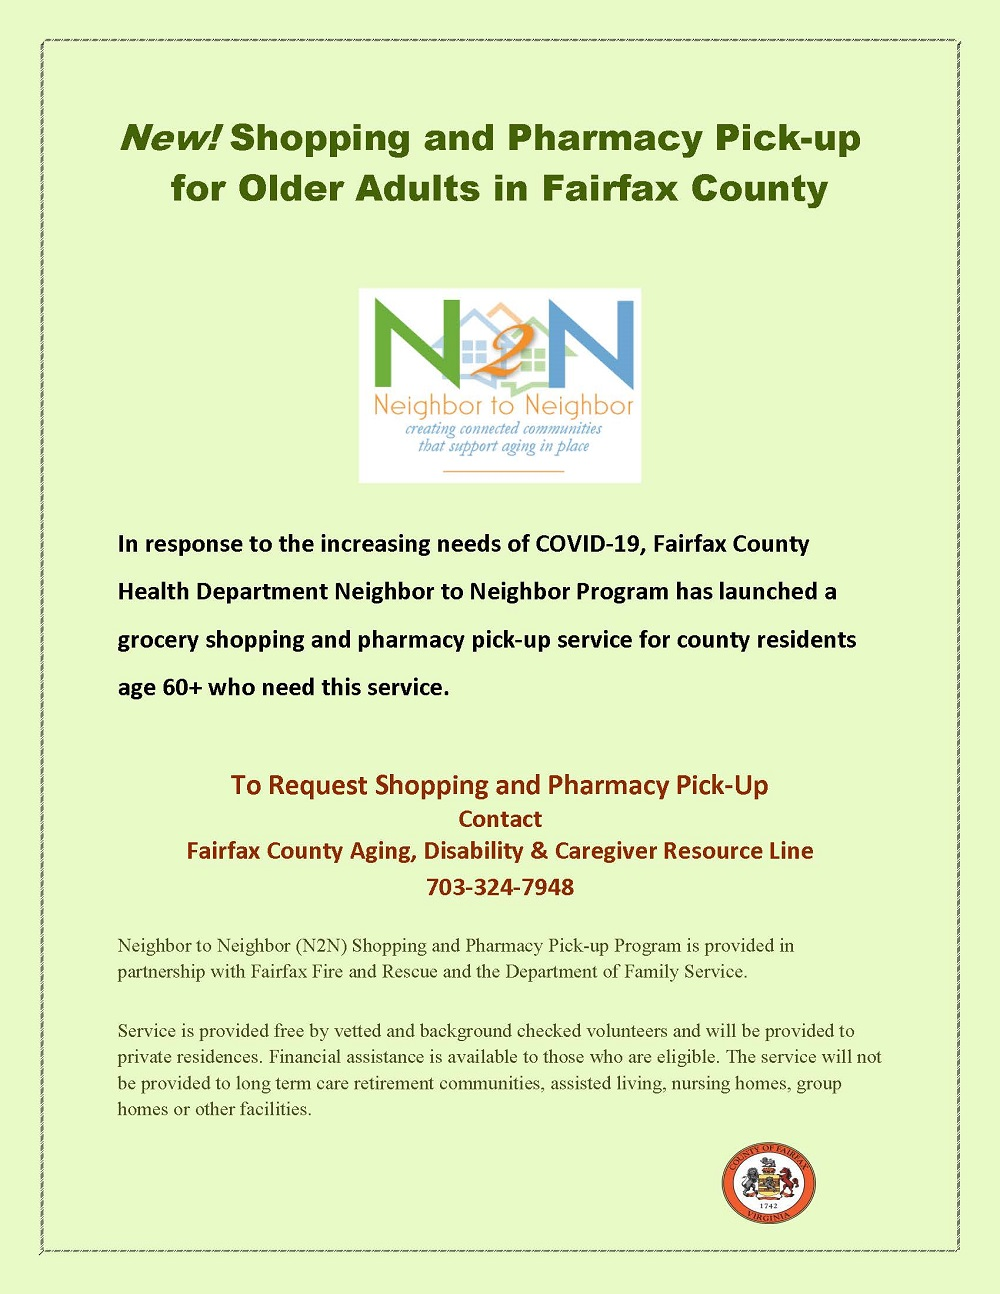 n2n Shopping and Pharmacy Pick-up